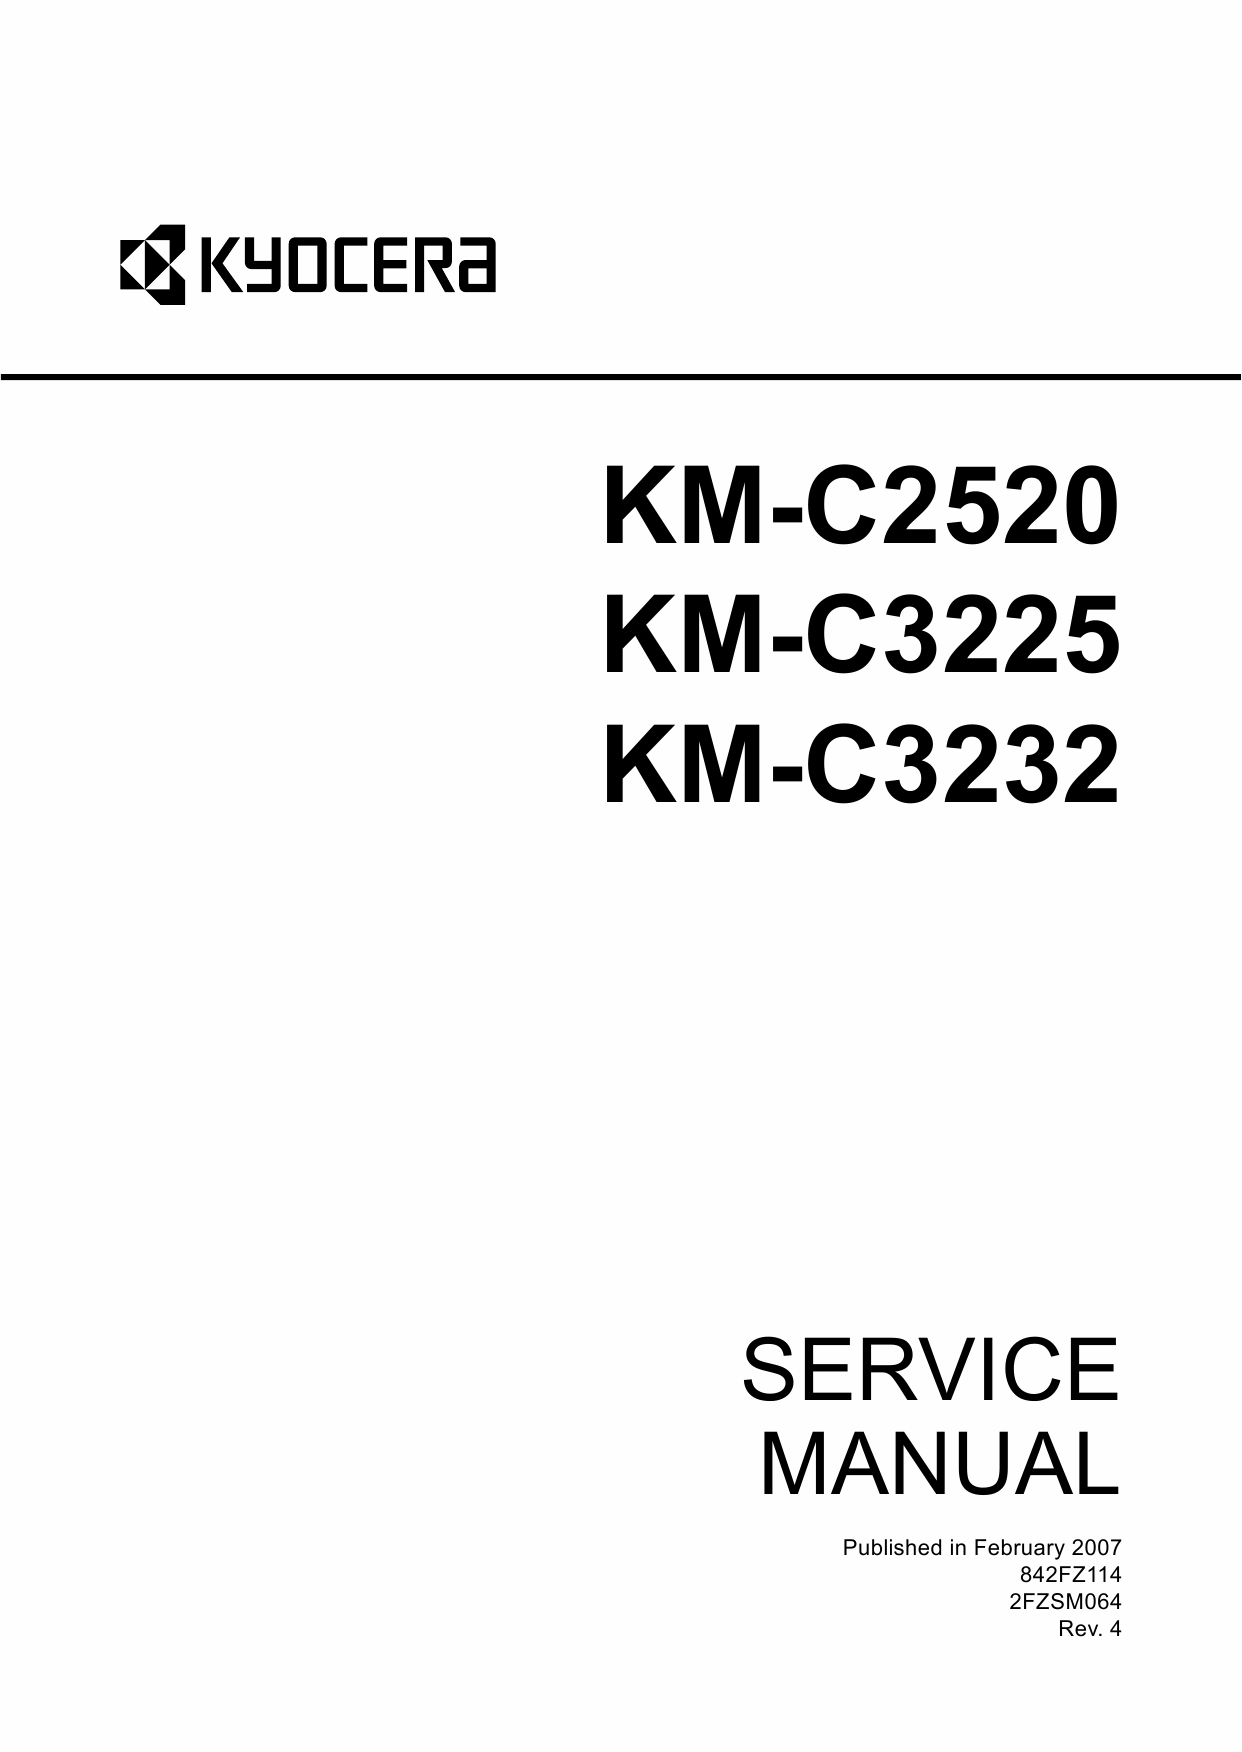 KYOCERA ColorCopier KM-C2520 C3225 C3232 Parts and Service Manual-1